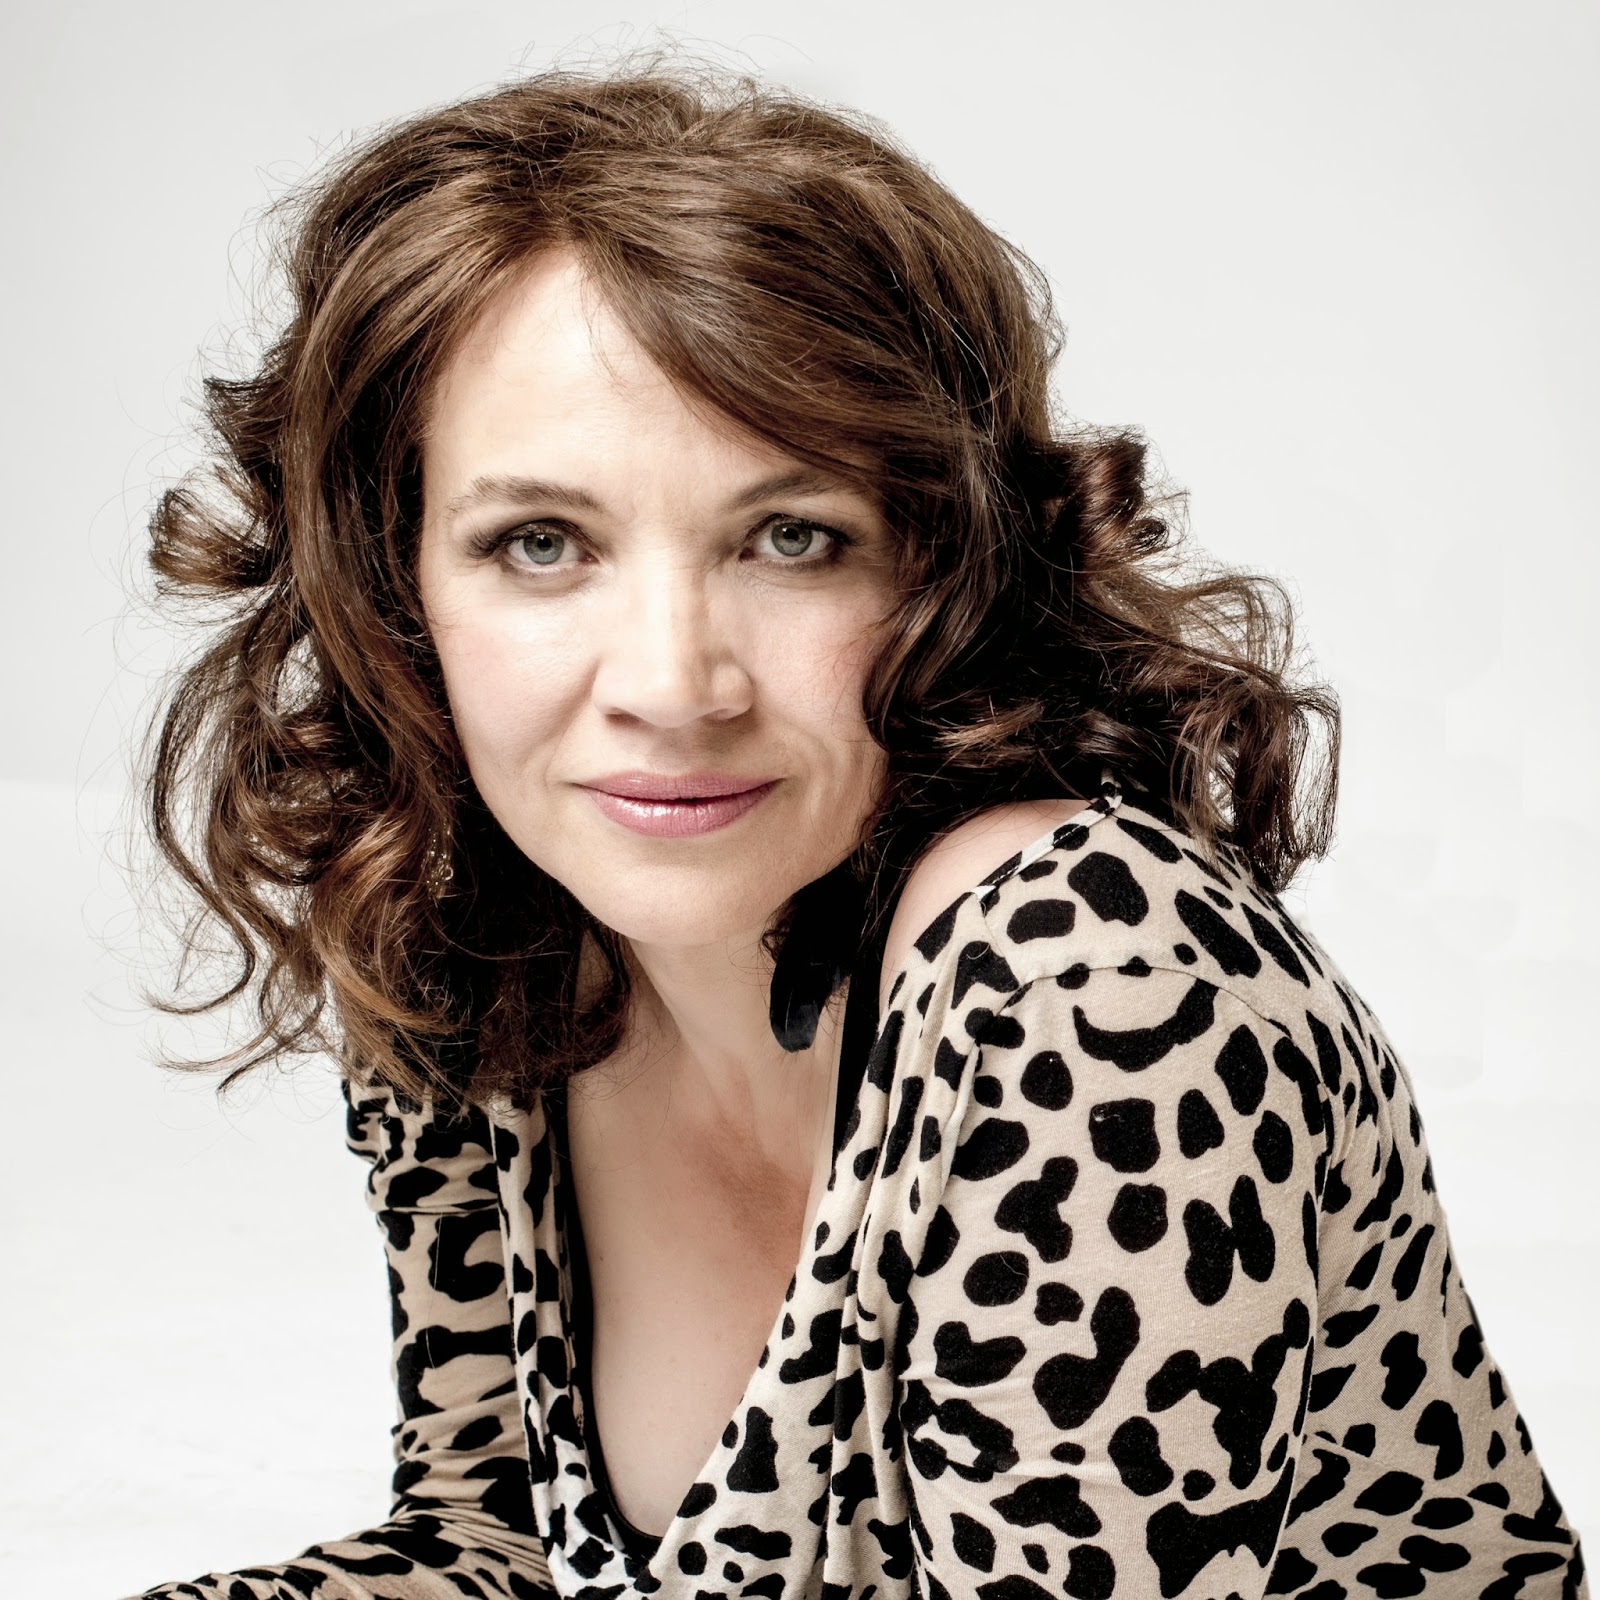 Jacqui Dankworth - photo credit: John Kentish